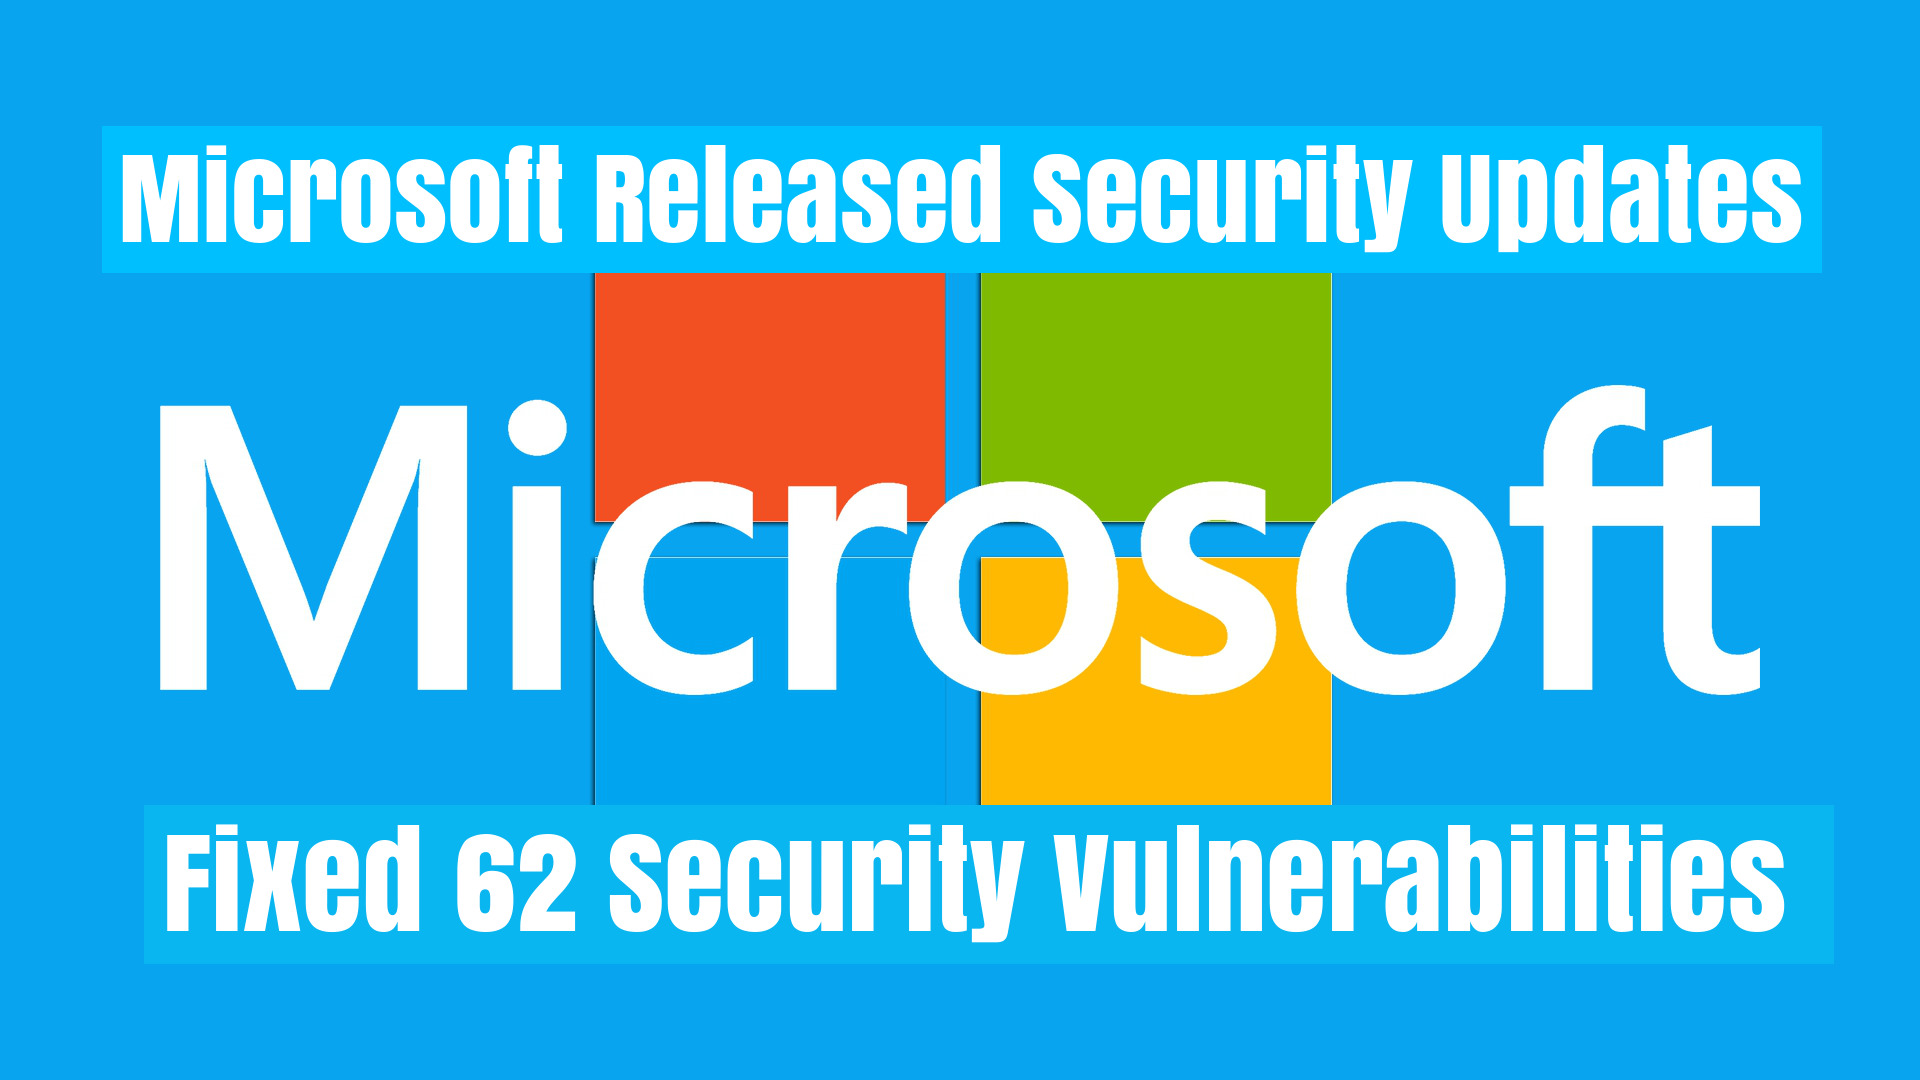 Microsoft Released Security Updates with the Patch for 62